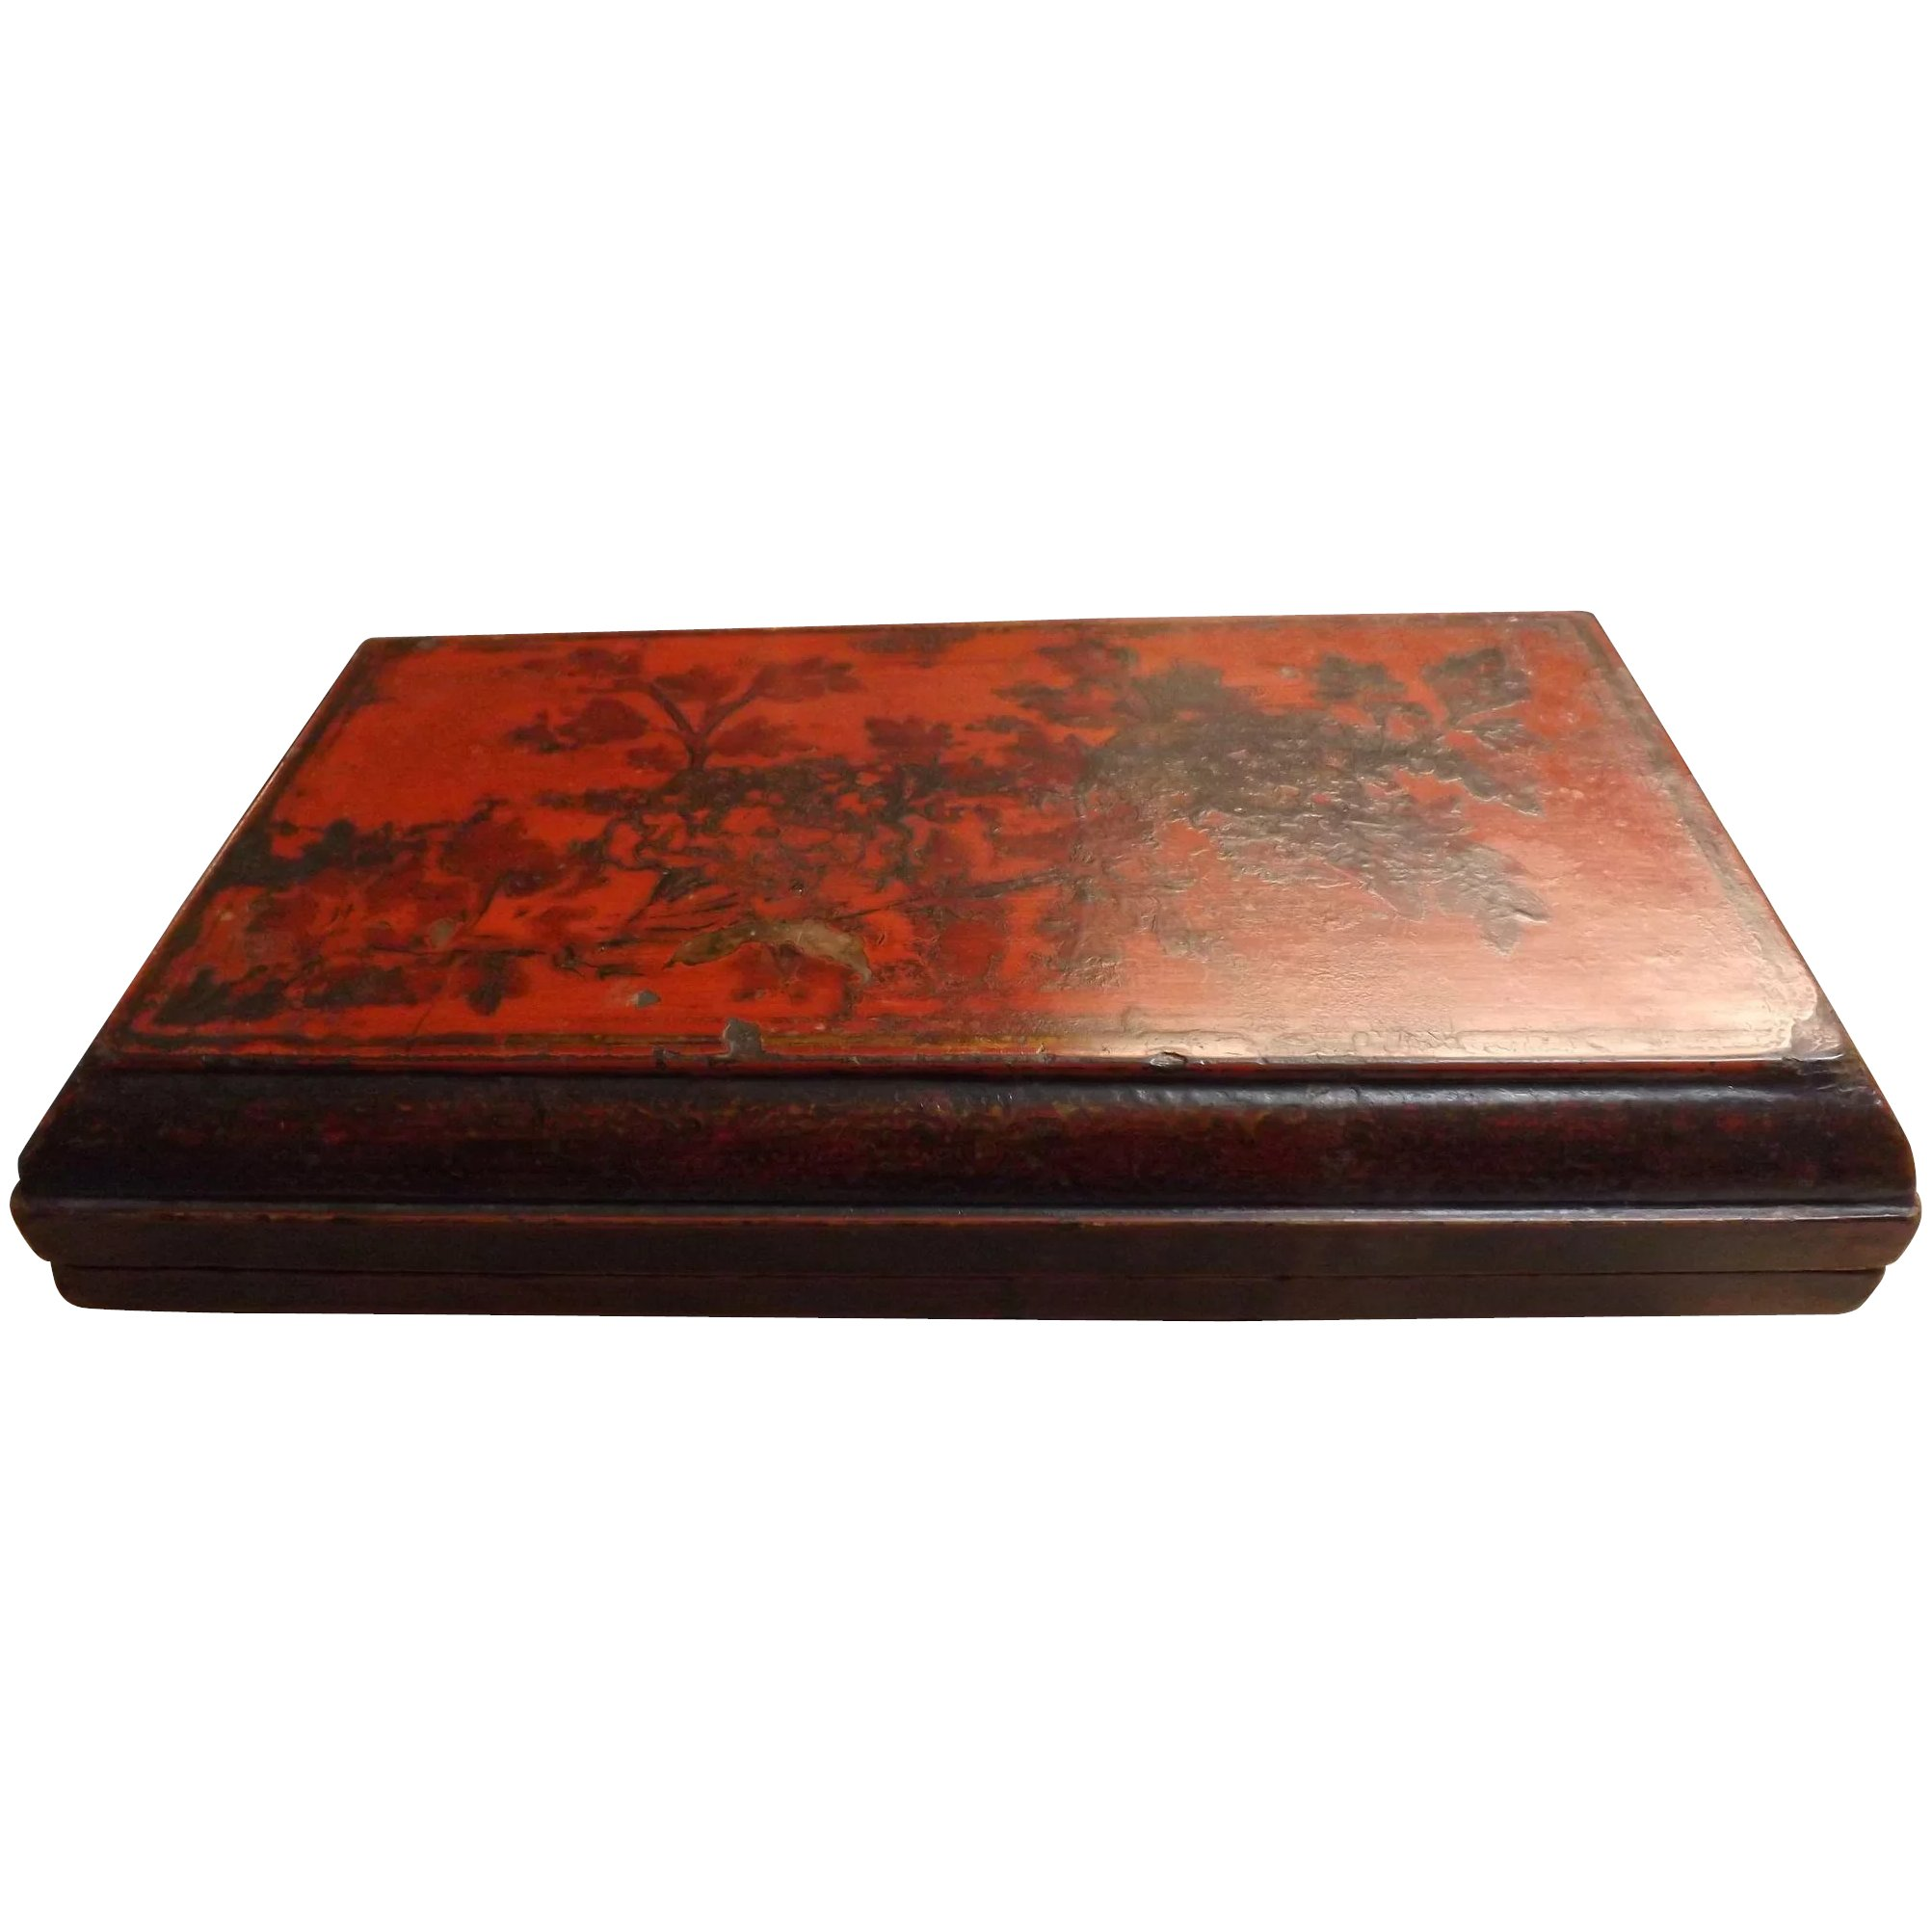 Quing Dynasty Presentation Box - Decorated Wood & Lacquer